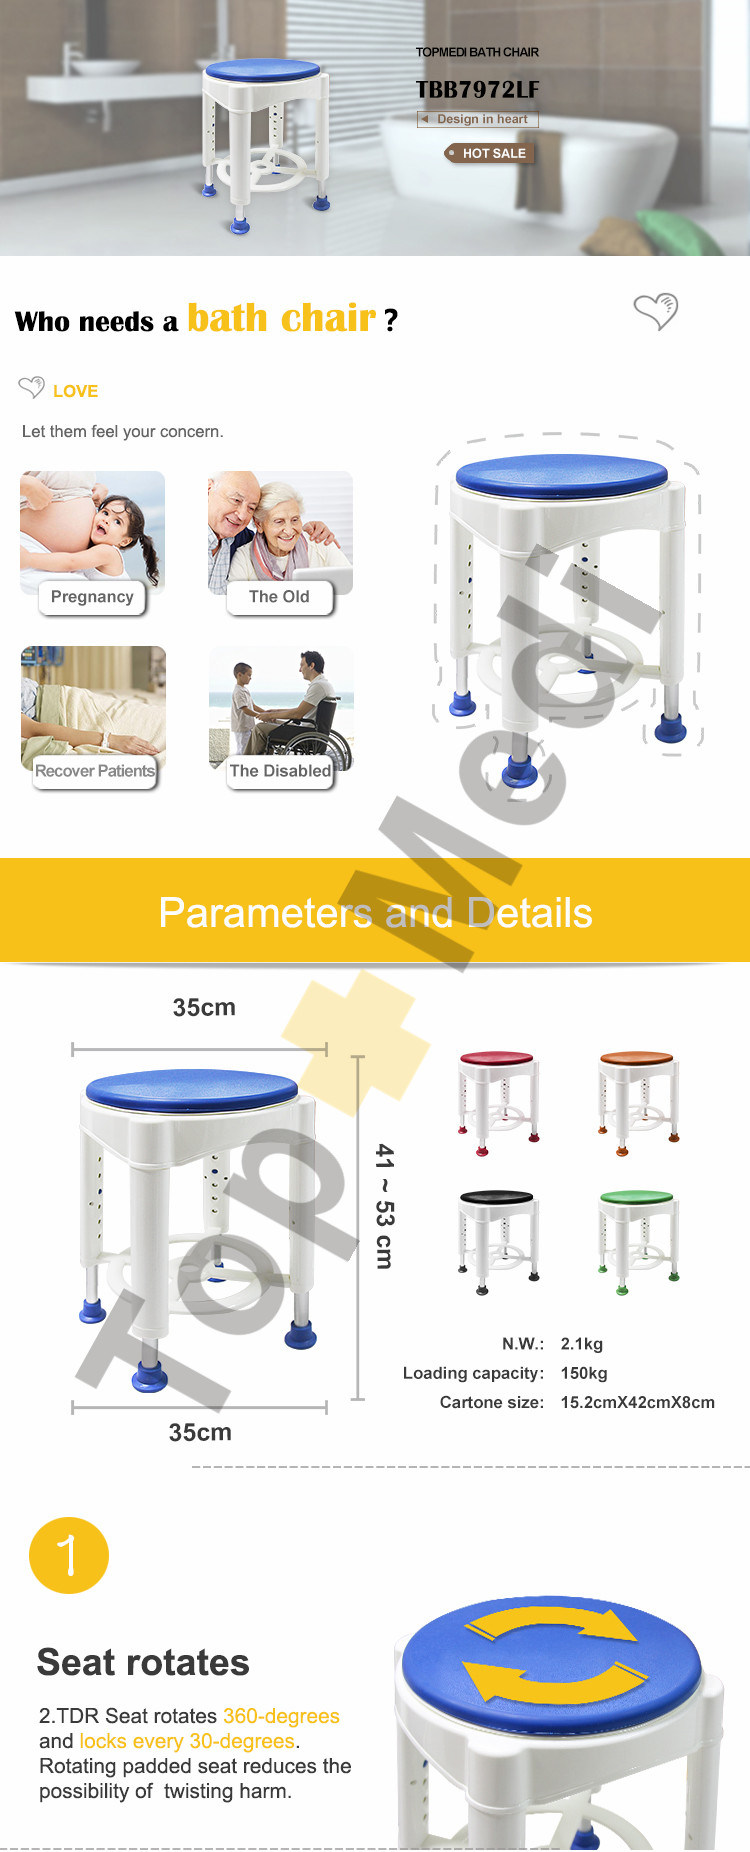 Bathroom Safety Product Rotatable Bath Shower Chair Stool with Padded Rotating Seat